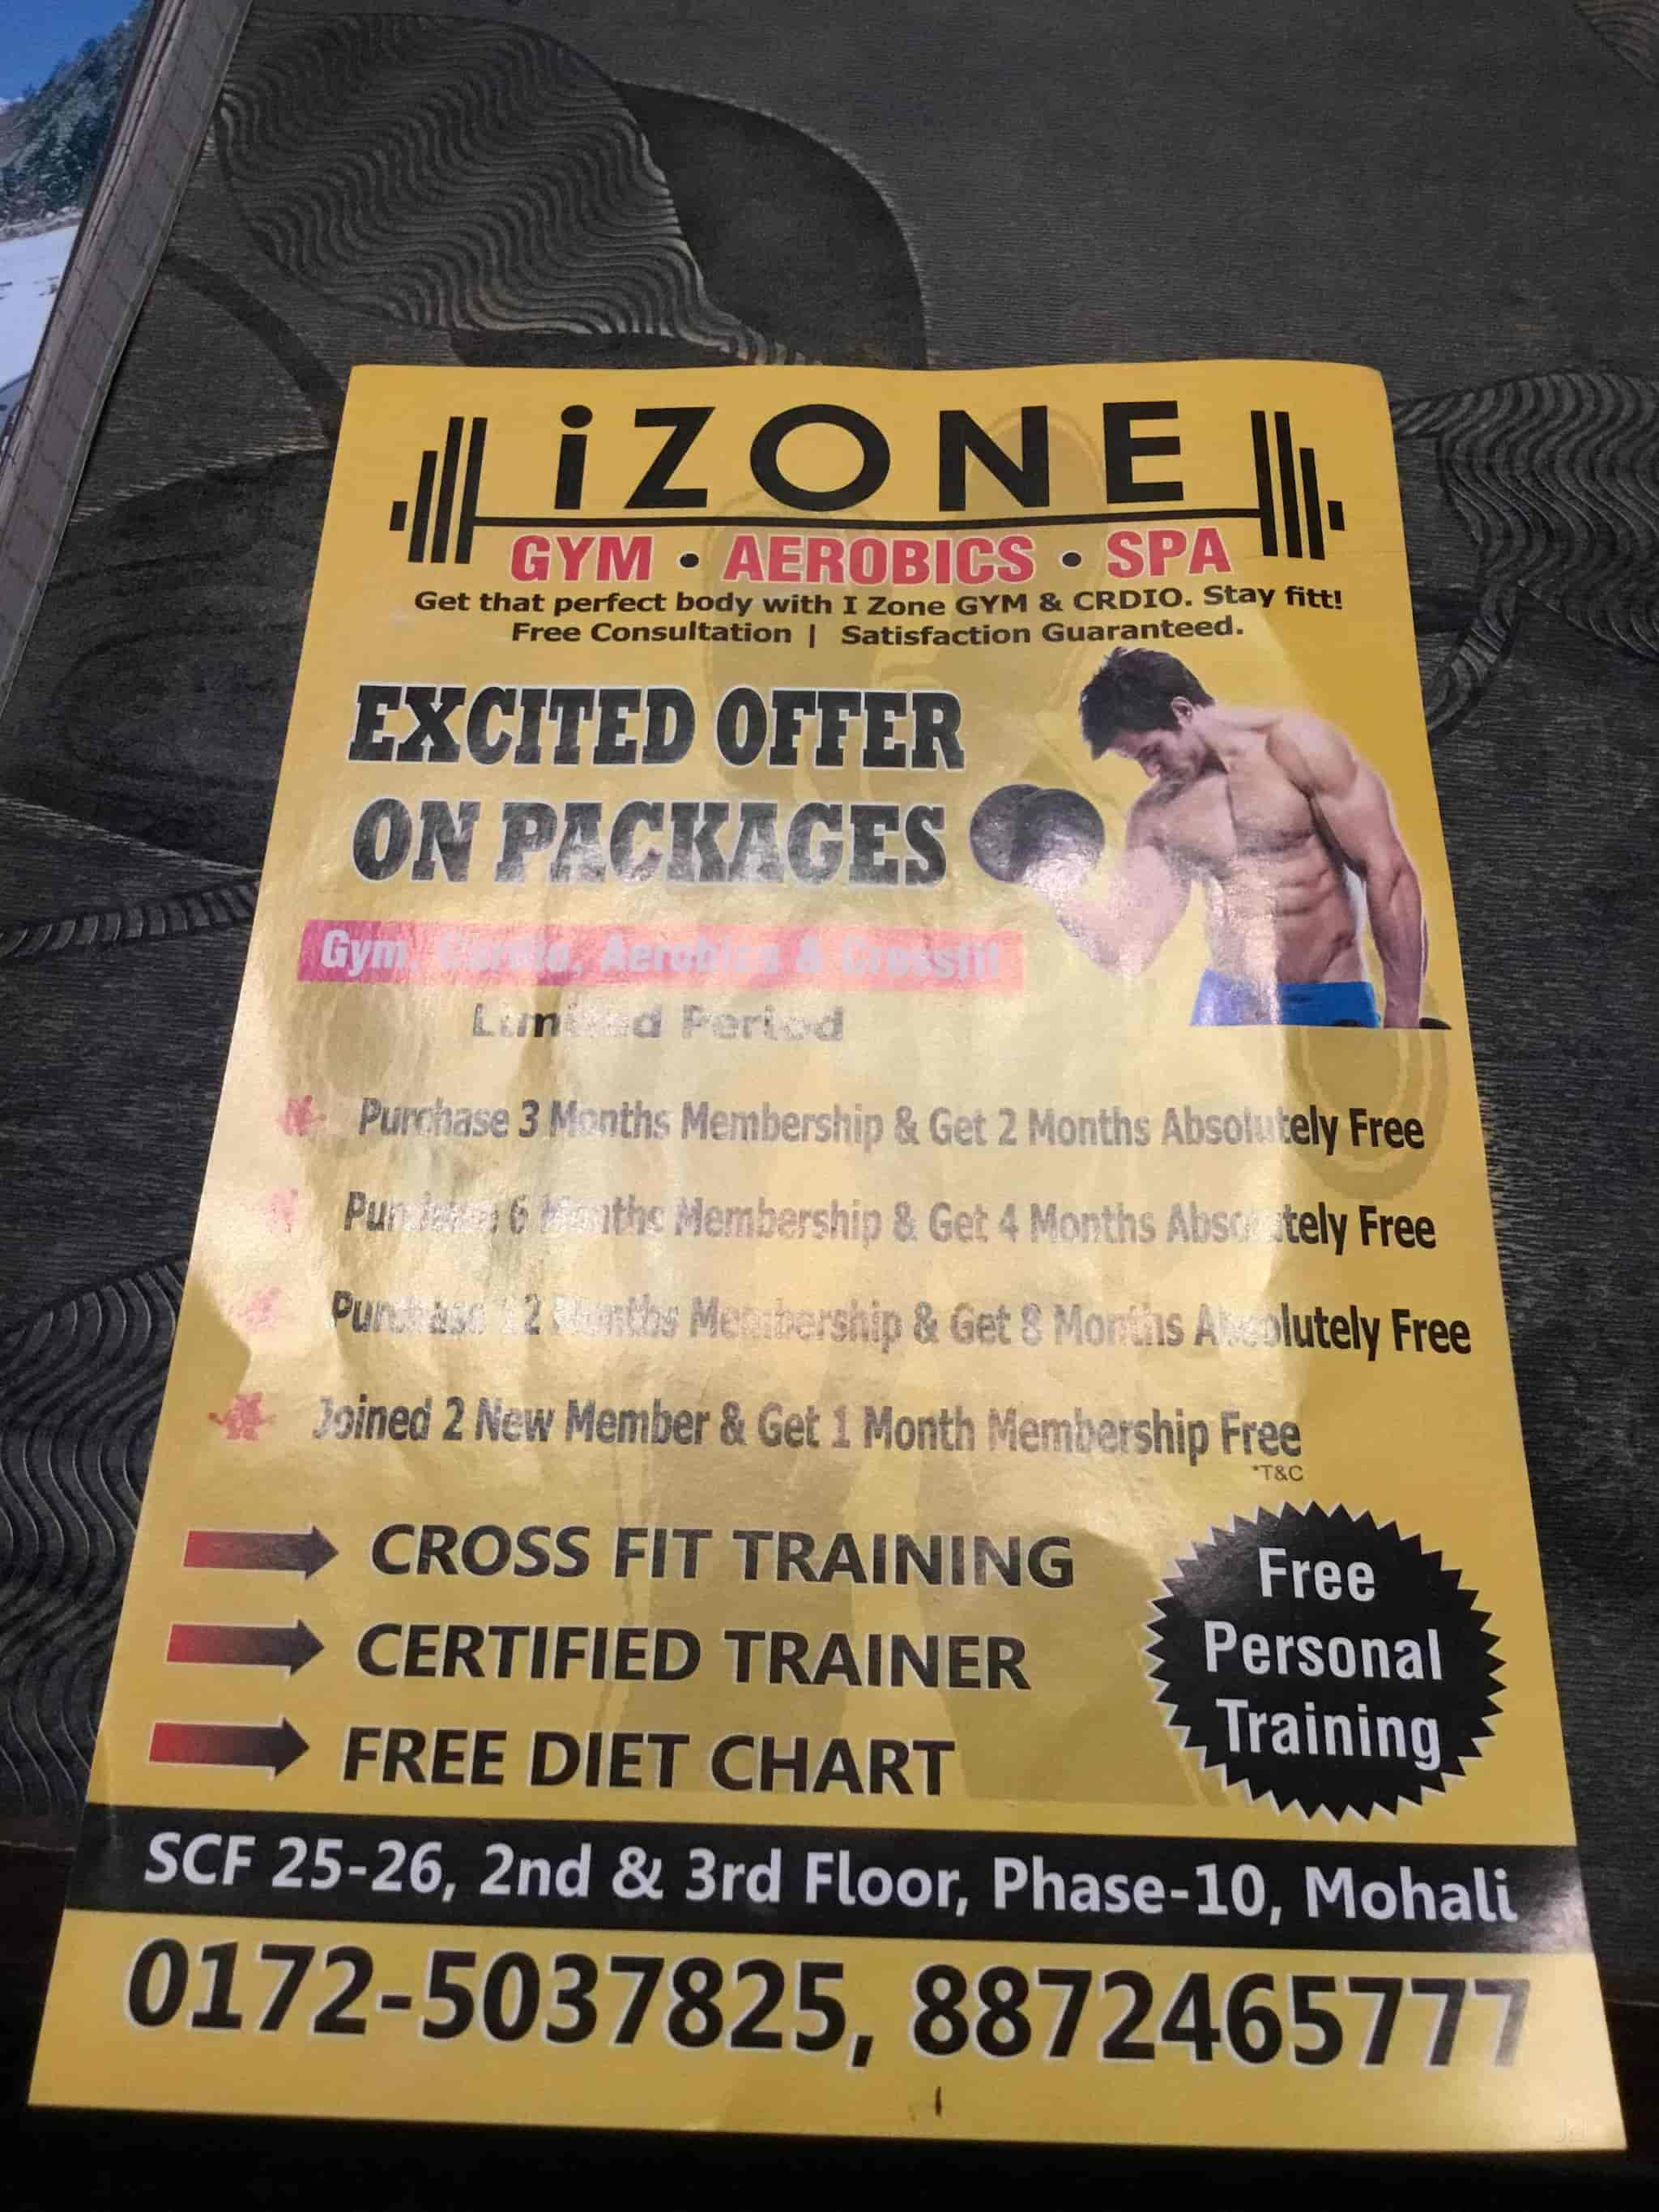 Izone Photos, Sector 64 Phase 10, Chandigarh- Pictures & Images